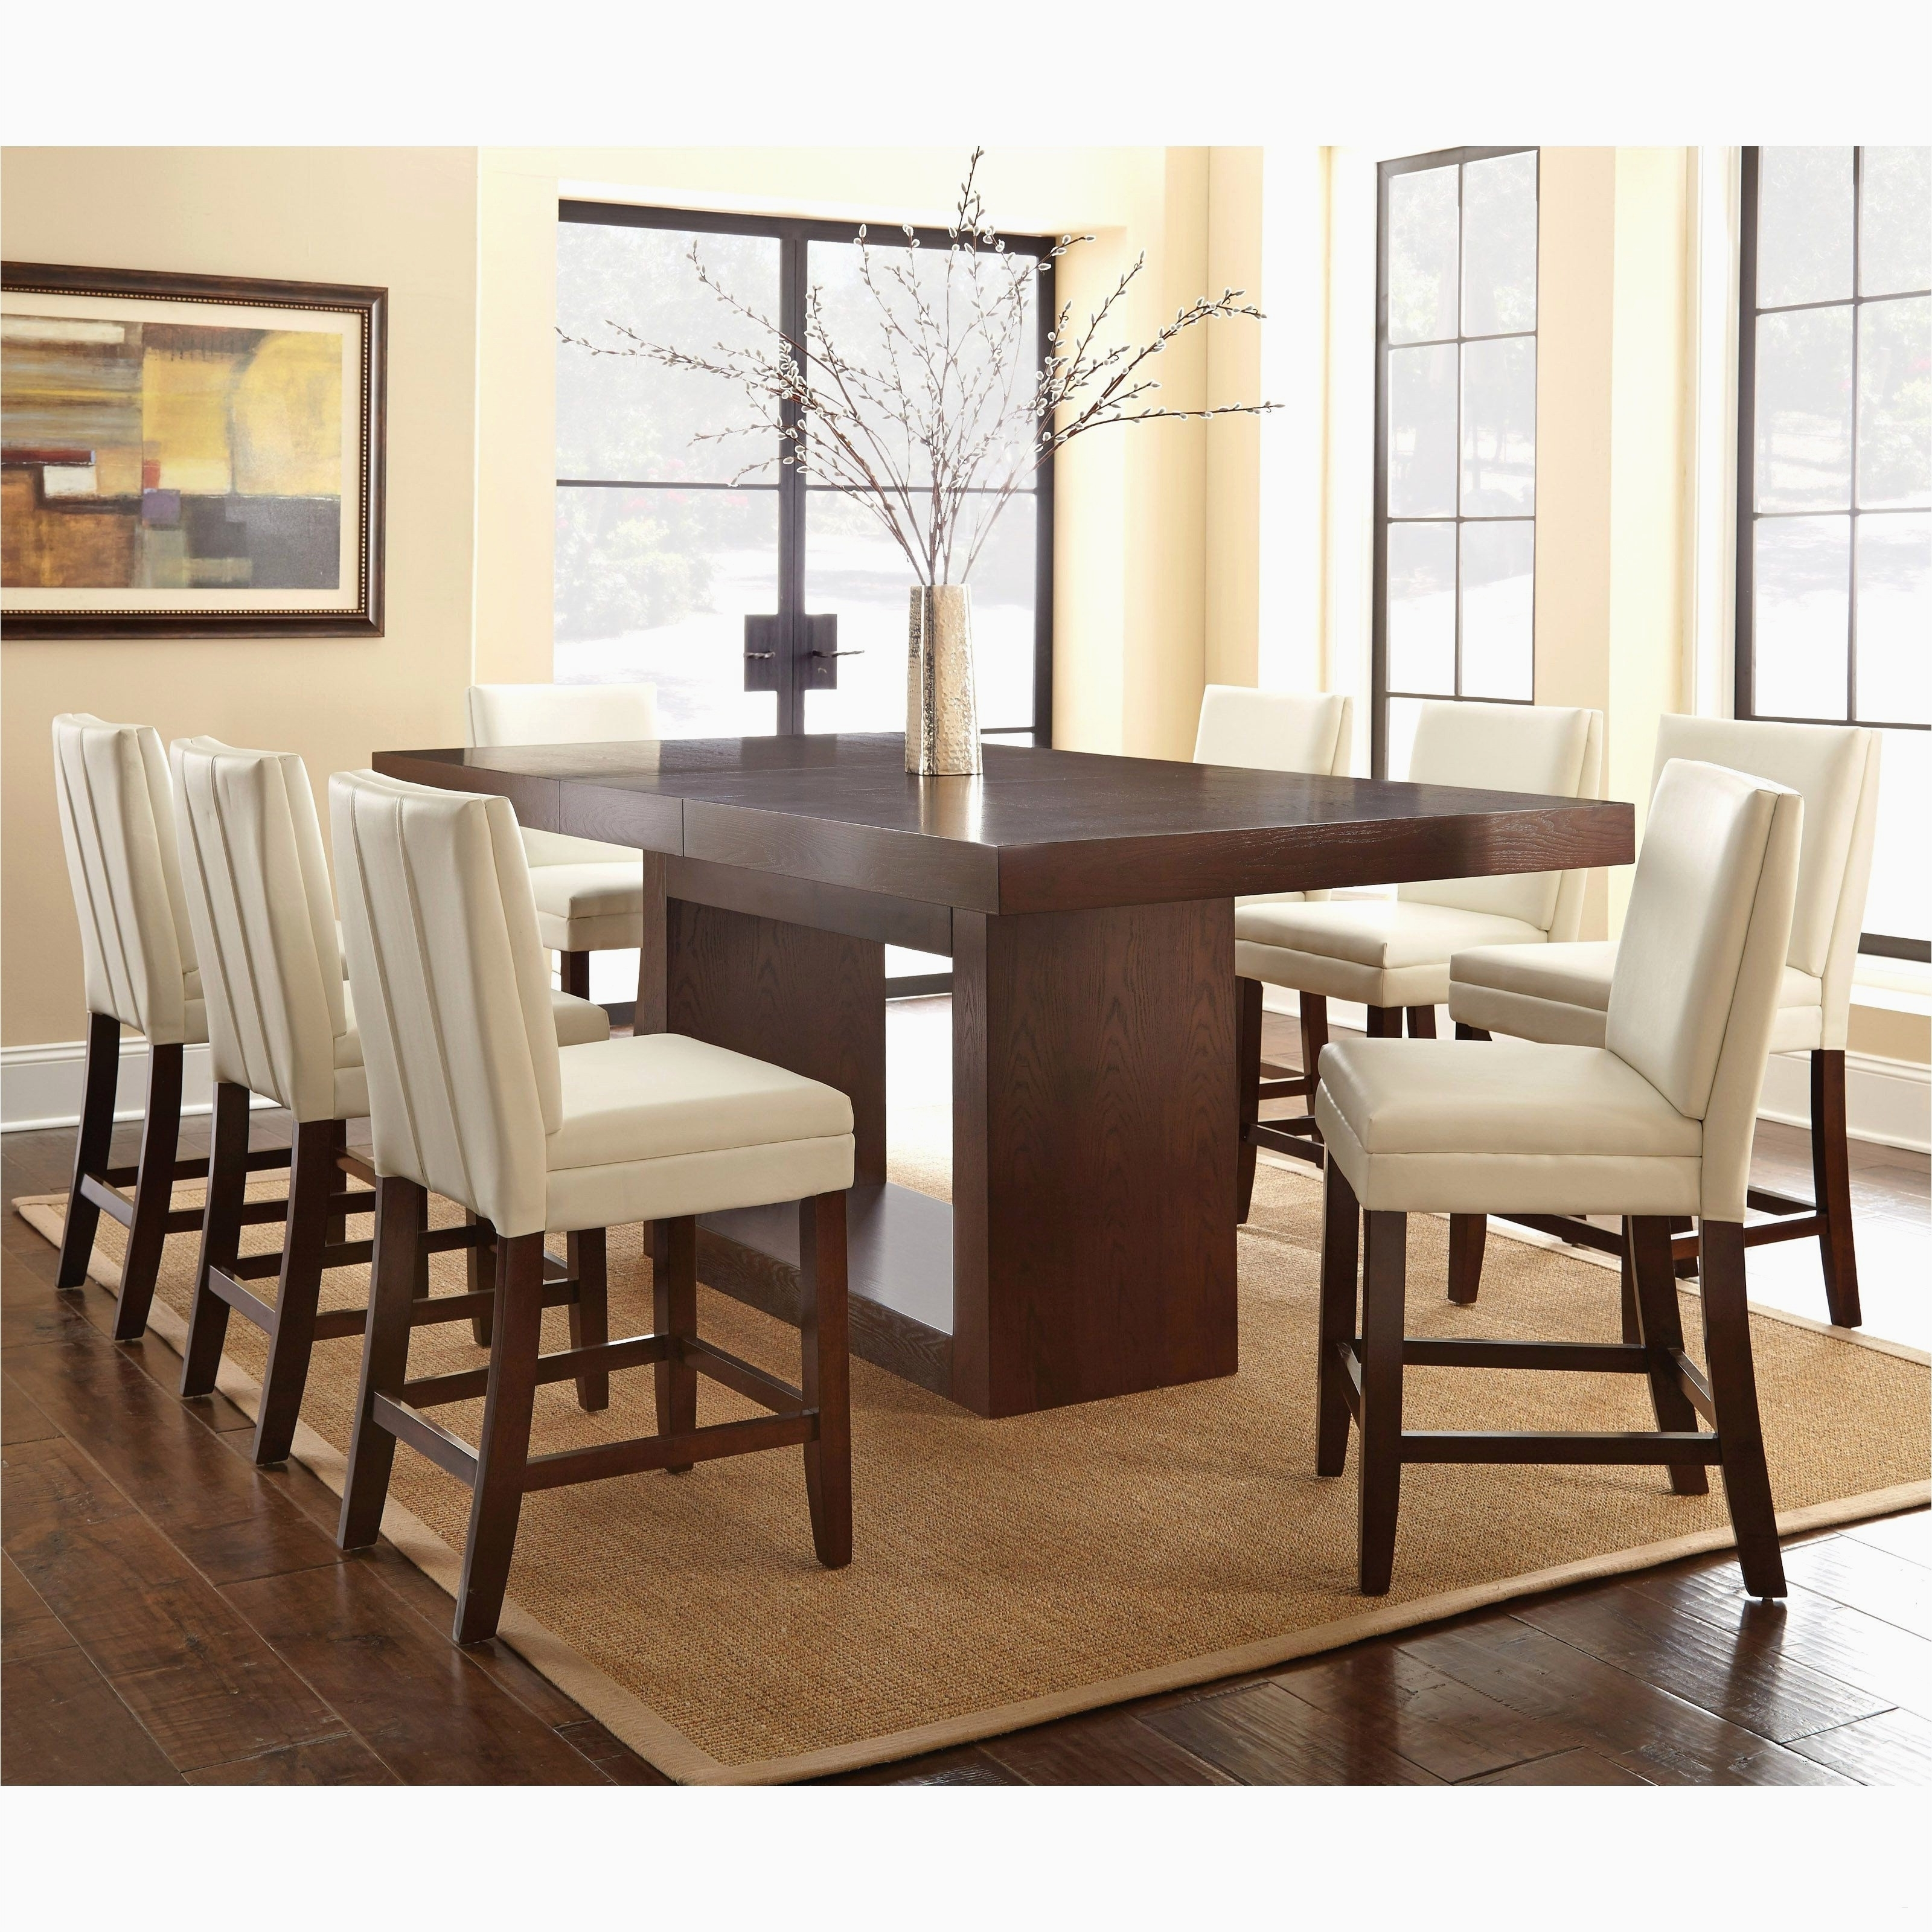 Favorite Bench With Back For Dining Tables Regarding Half Moon Kitchen Table Luxury 24 Elegant Corner Bench Seat Dining (View 20 of 25)